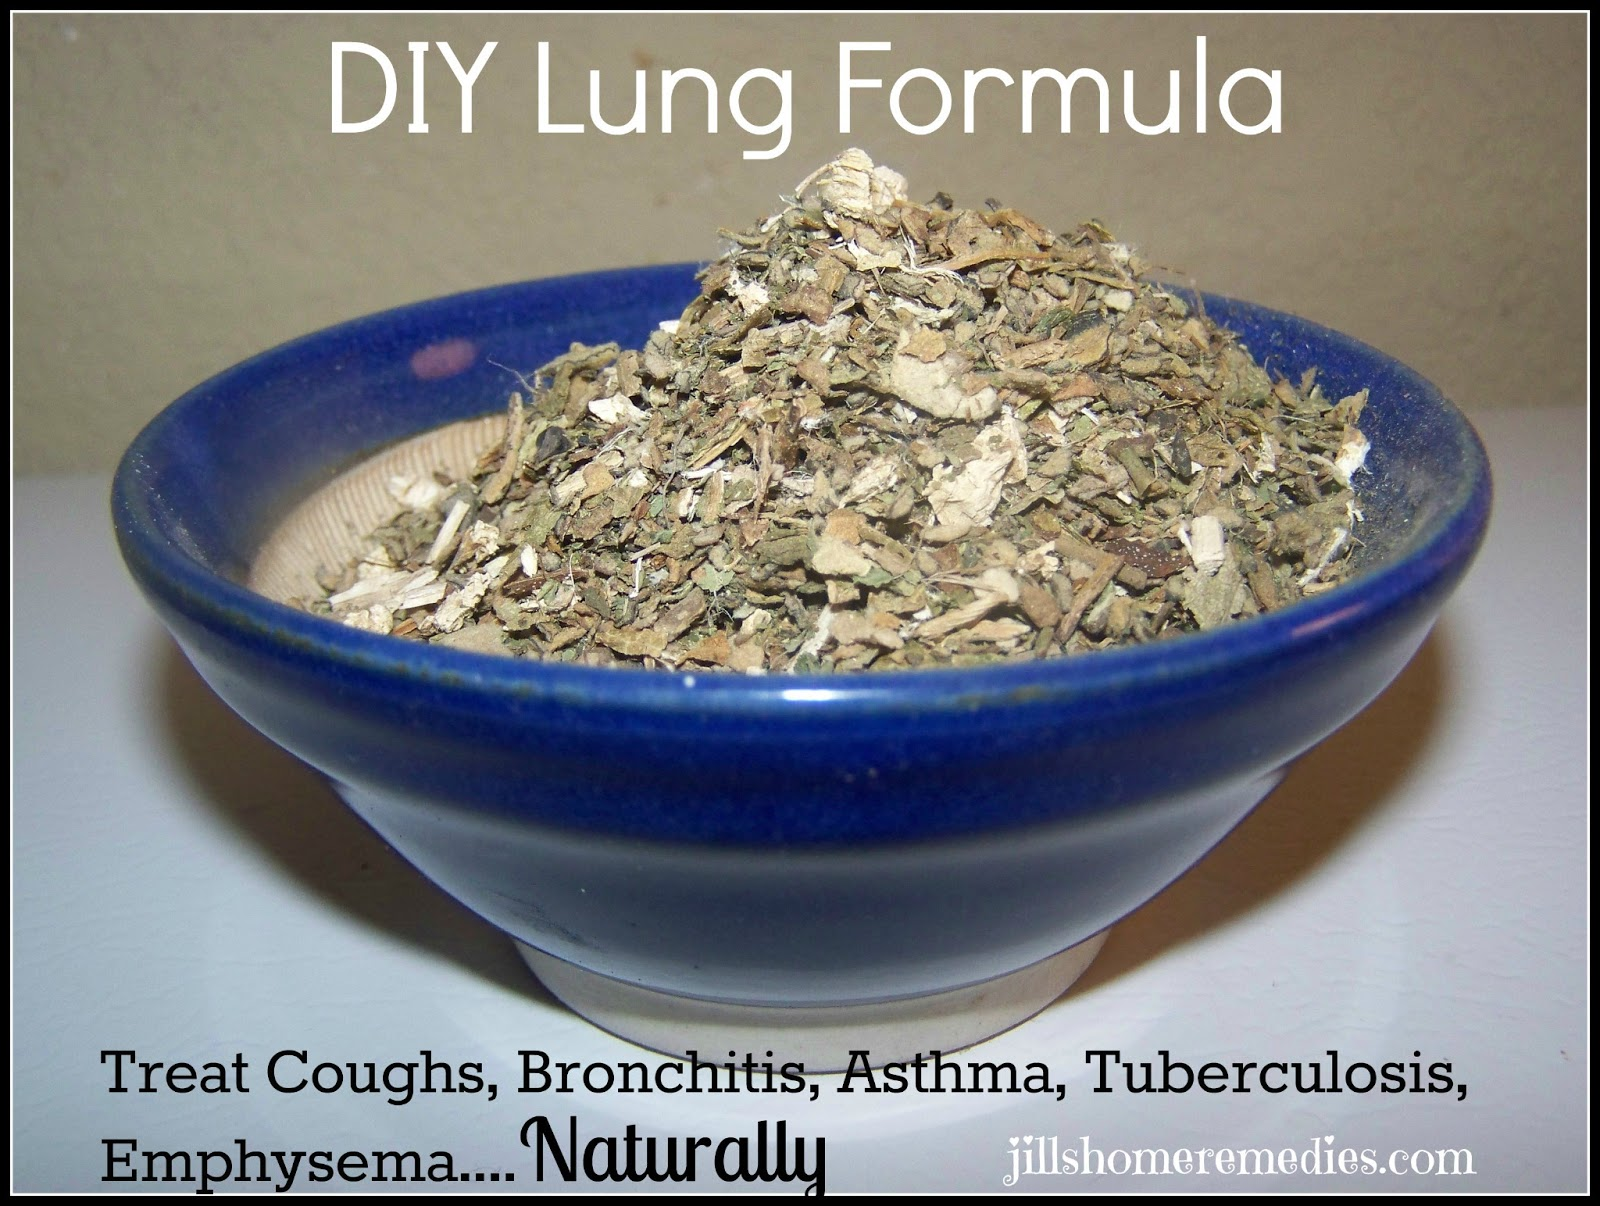 DIY Lung Formula For Coughs, Bronchitis, Asthma - Jill's